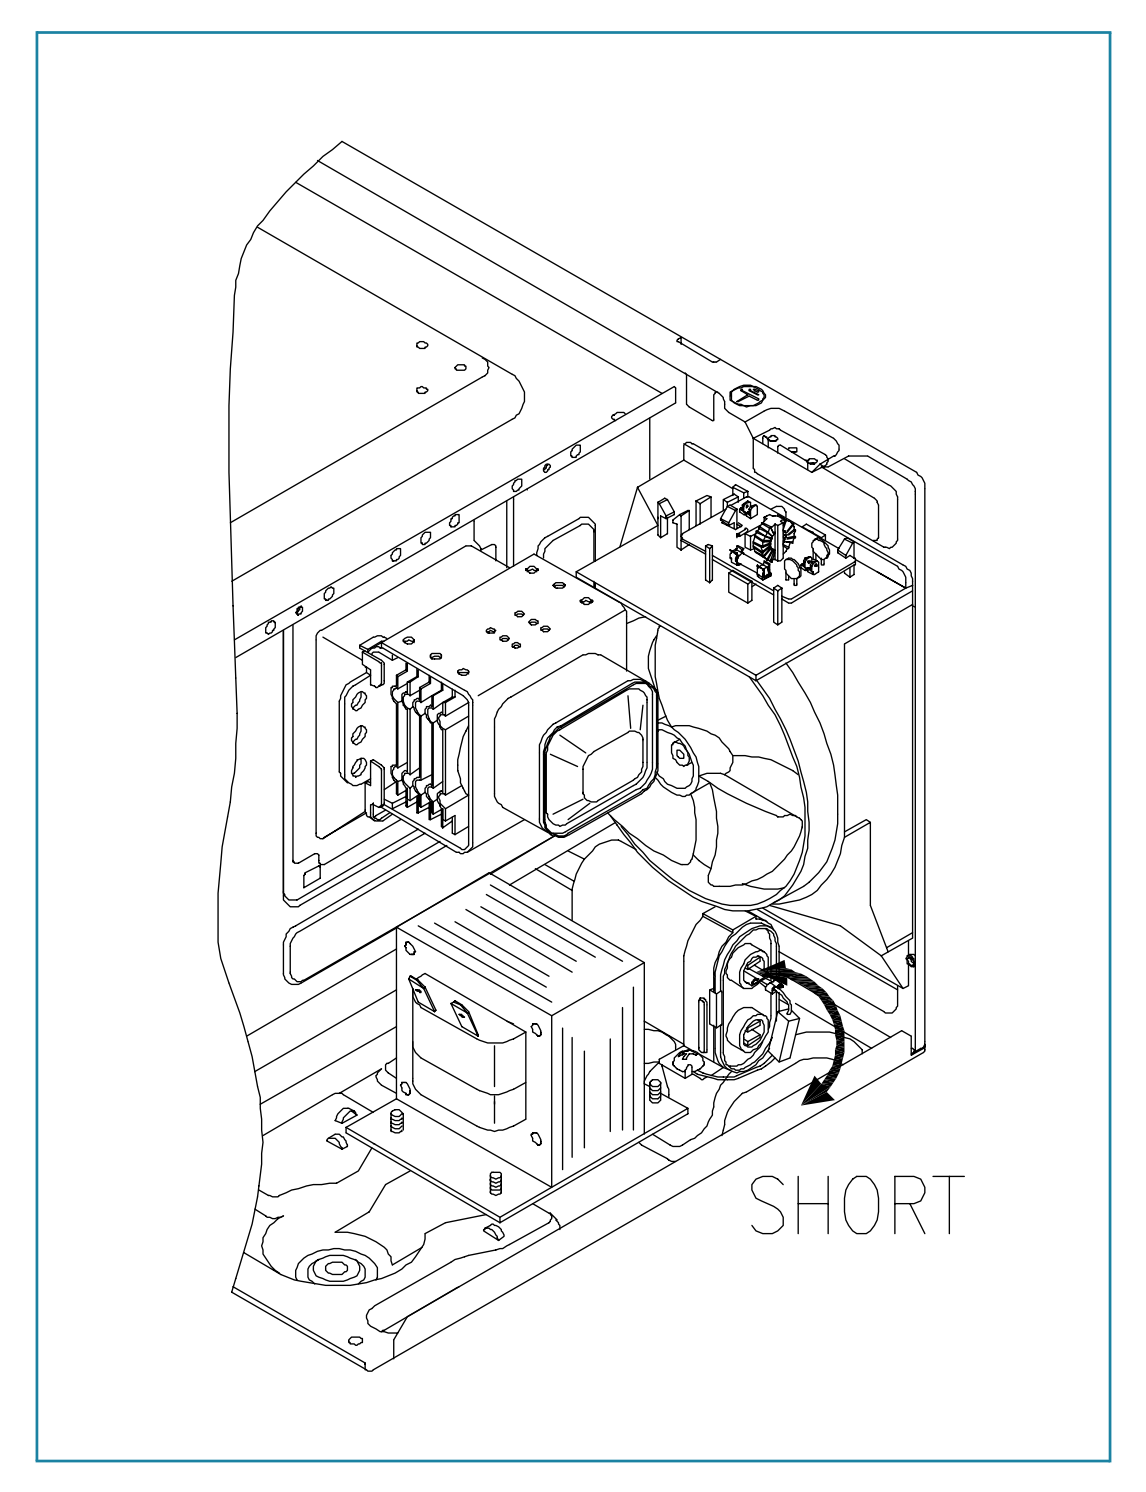 Though i did find the parable daewoo kor 161 service manual on daewoo mx this manual describes how to short the high voltage capacitor